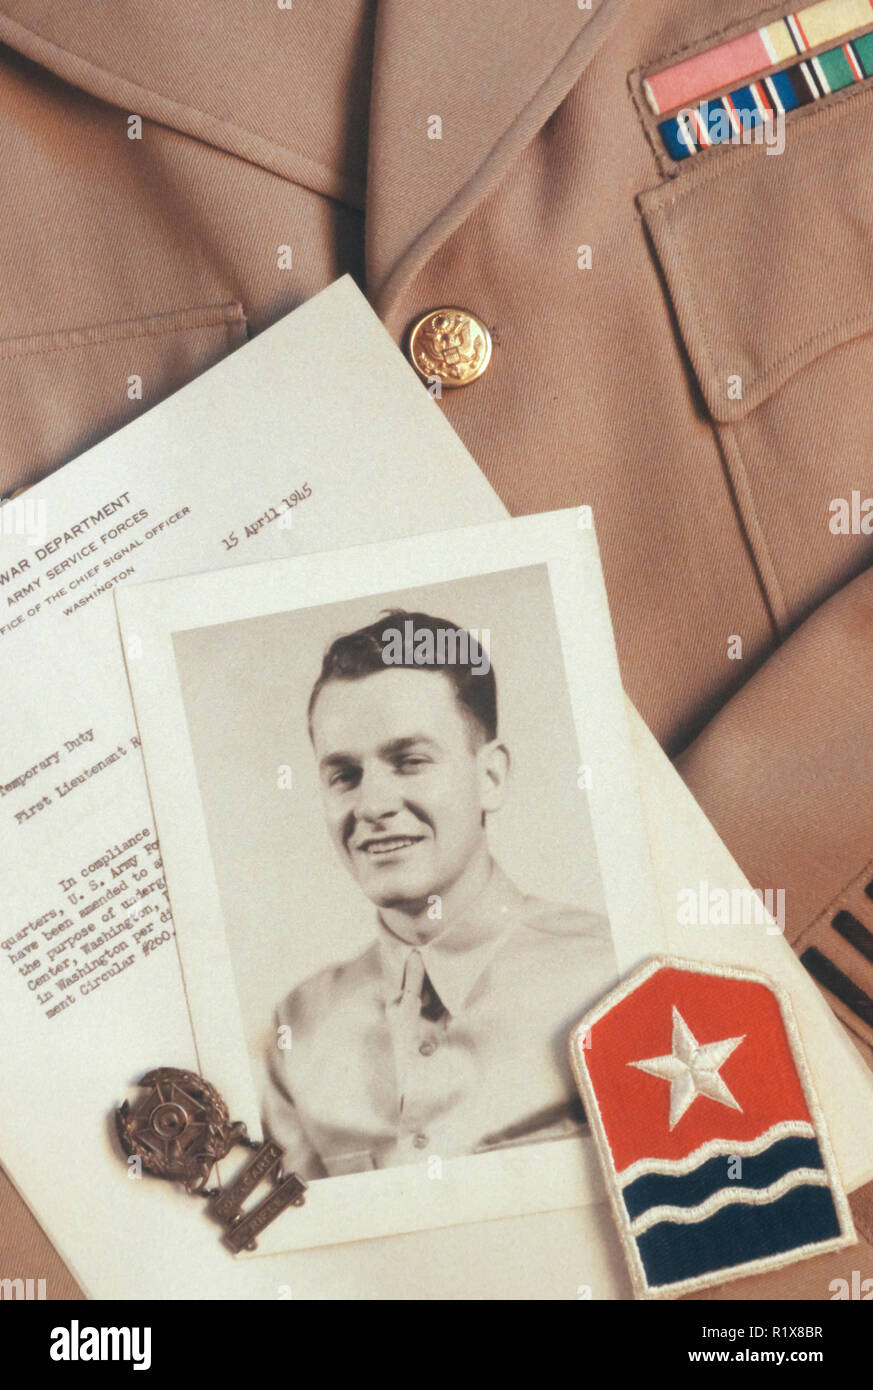 Still Life, World War 2 Photos, Badges and papers on uniform jacket, USA - Stock Image